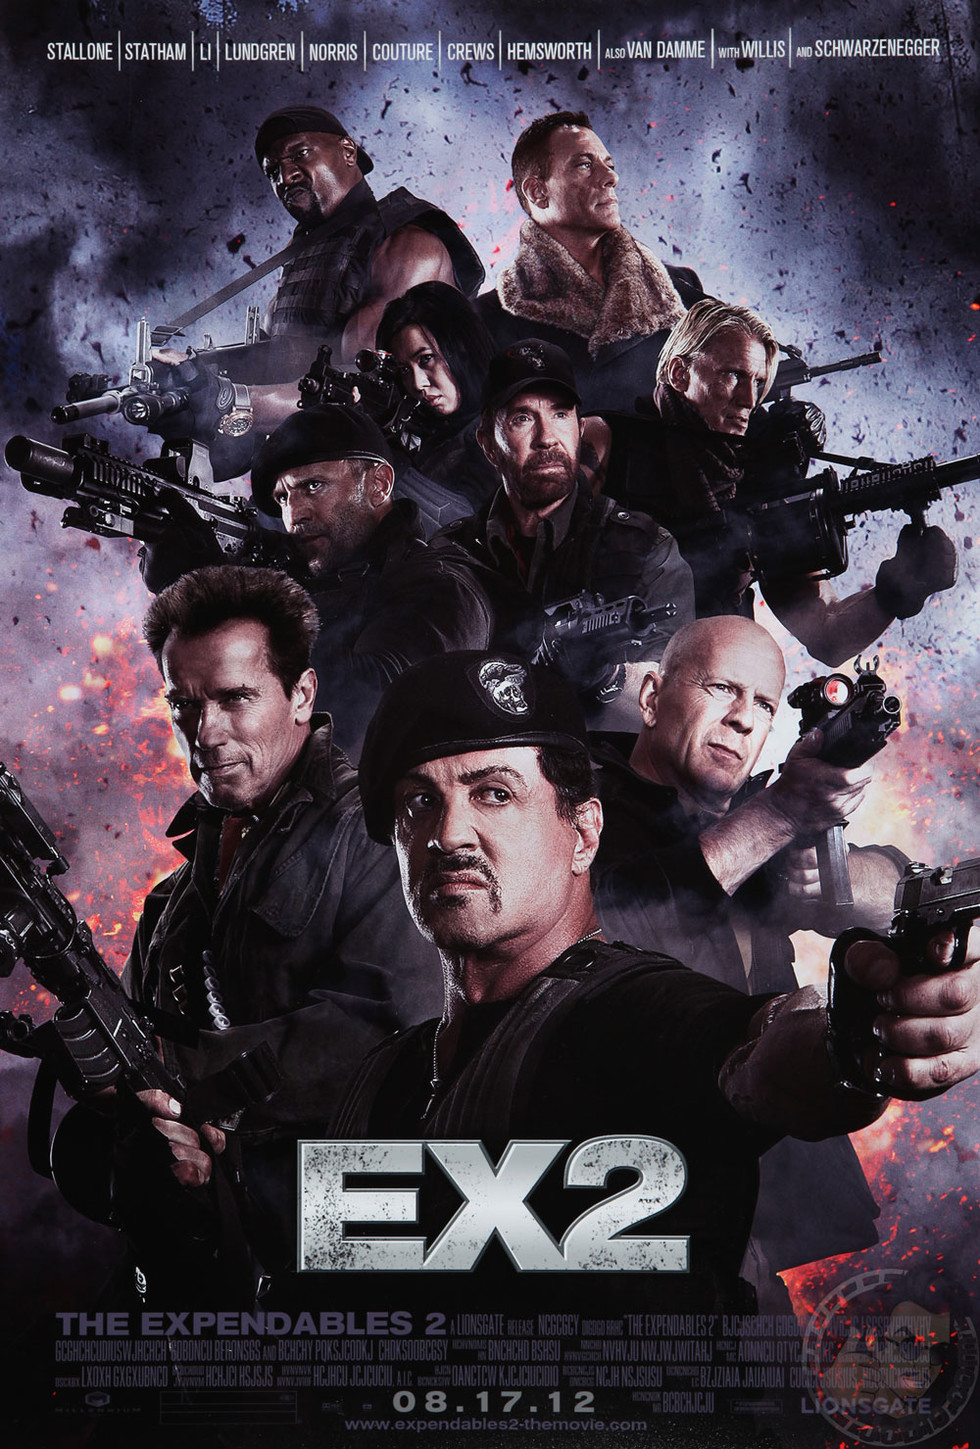 The Expendables 2 - Movie Poster #2 (Large)